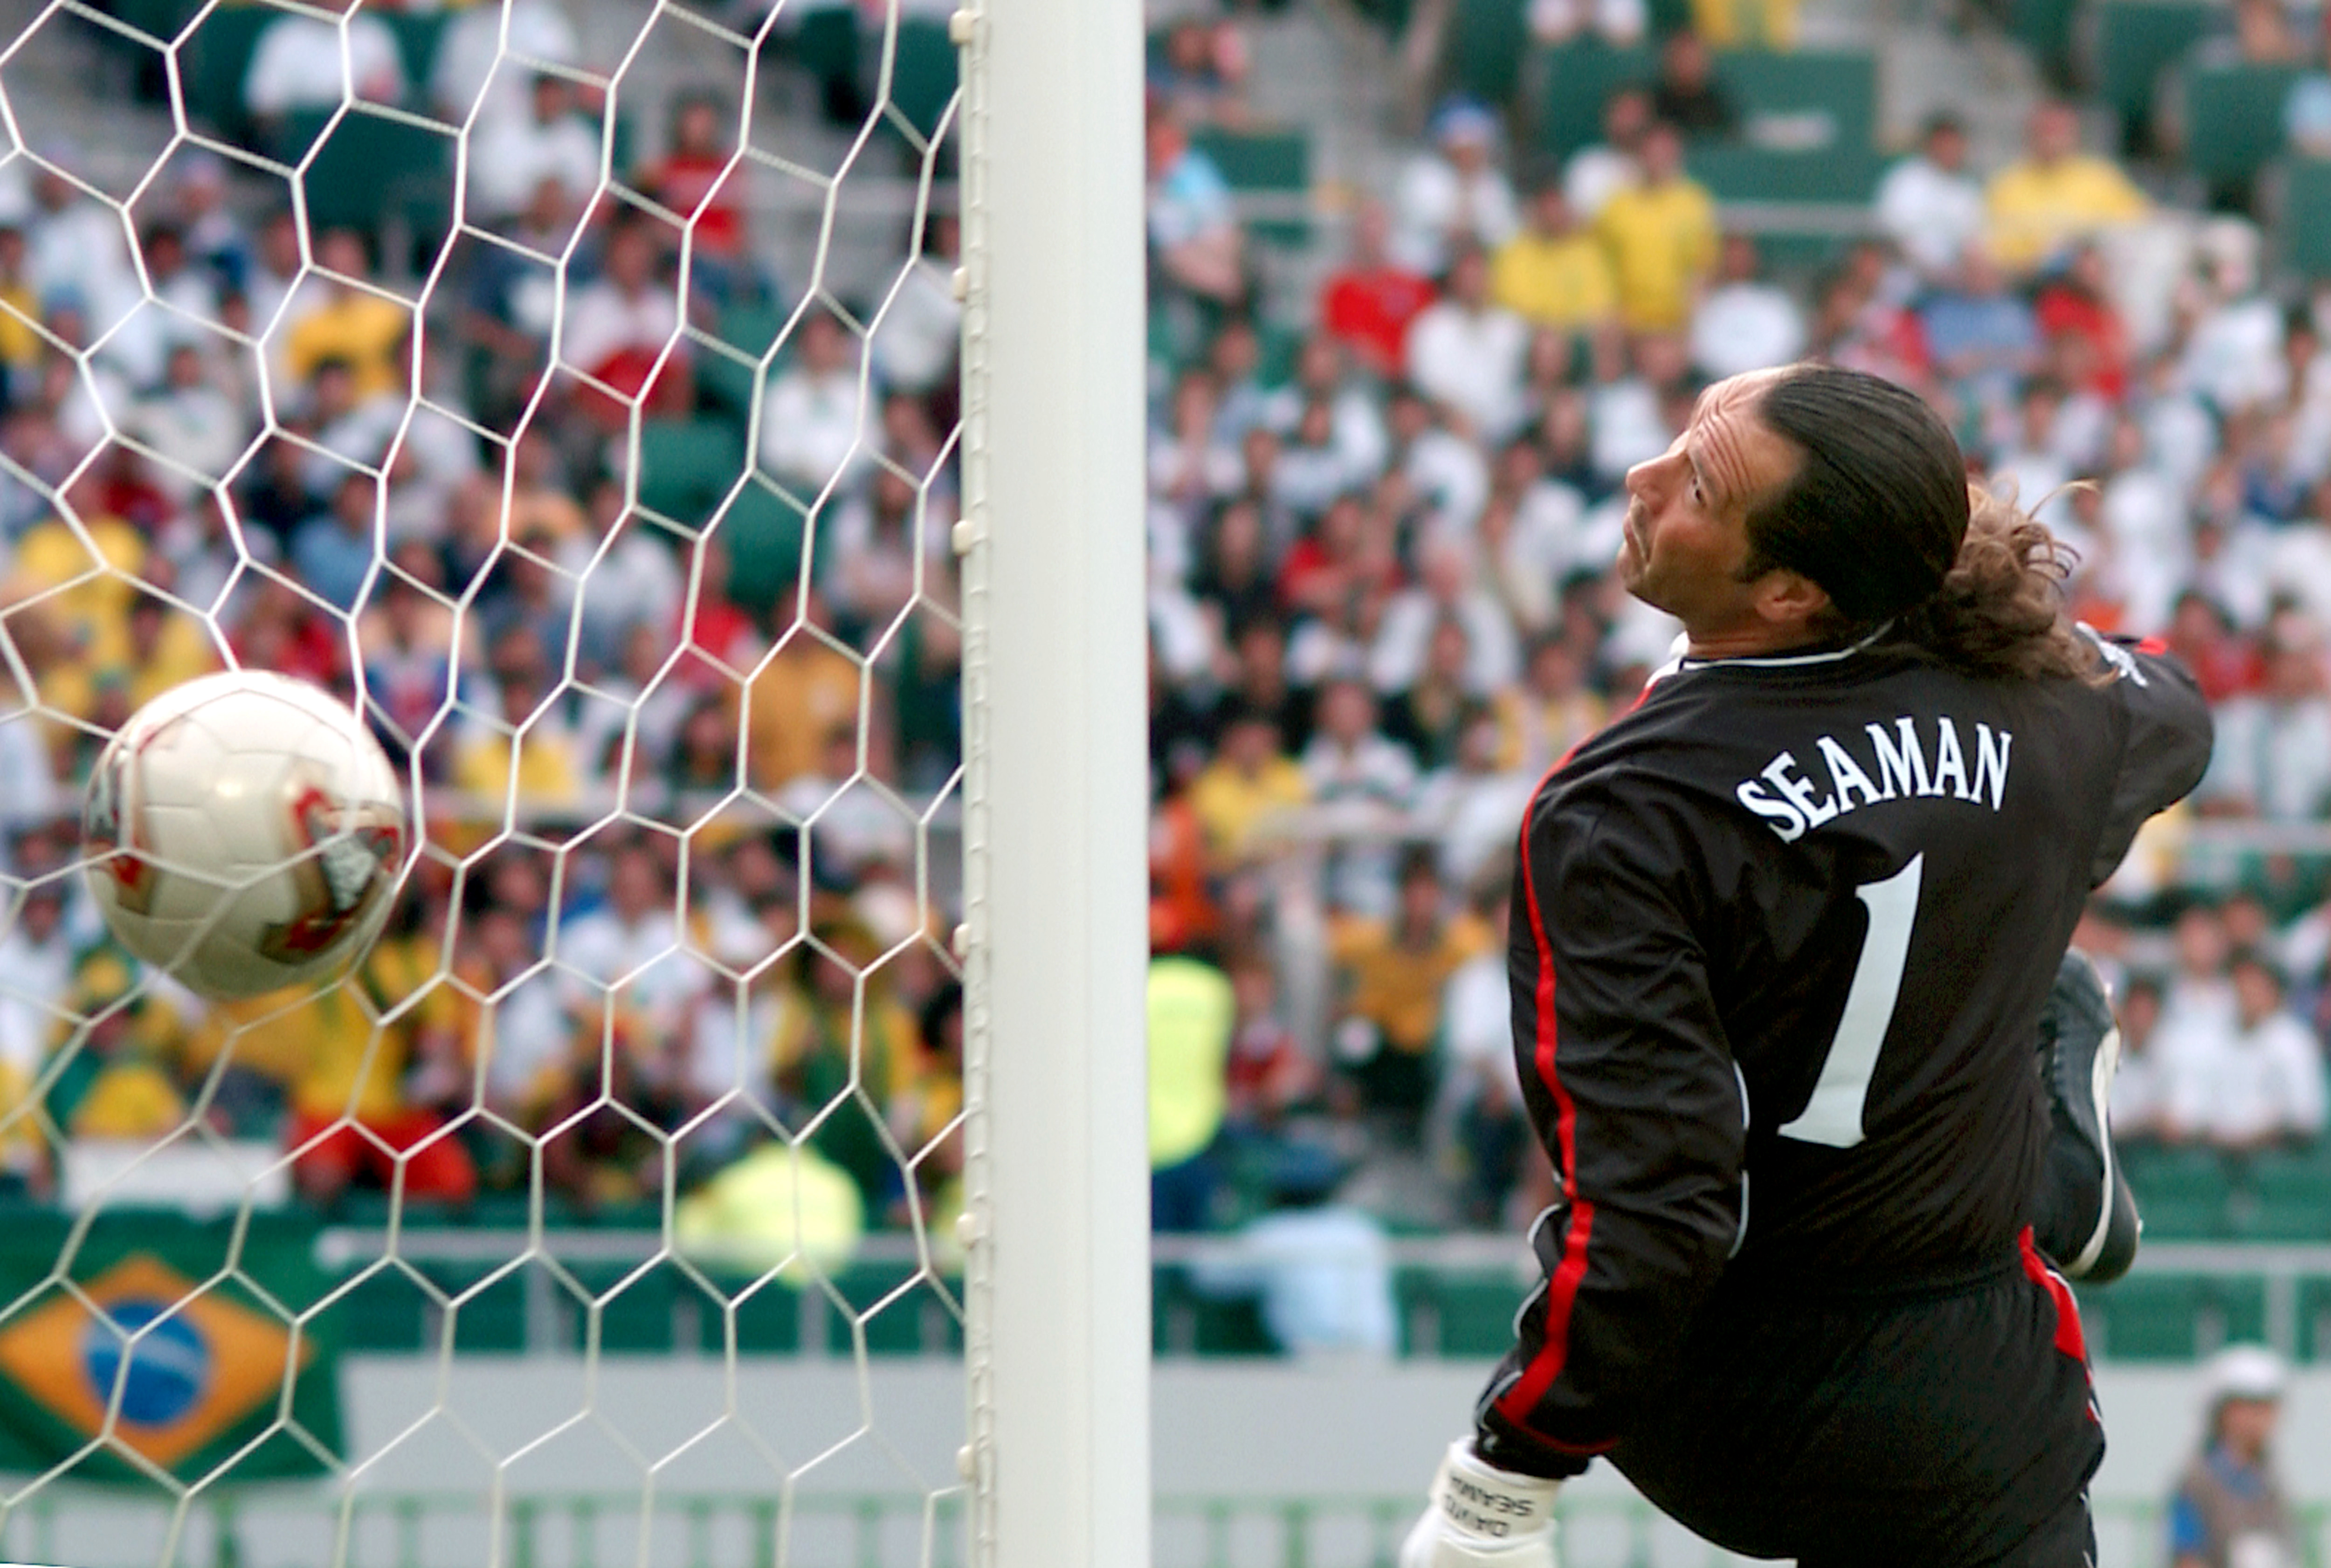 Seaman flops back and just watches on. Image: PA Images